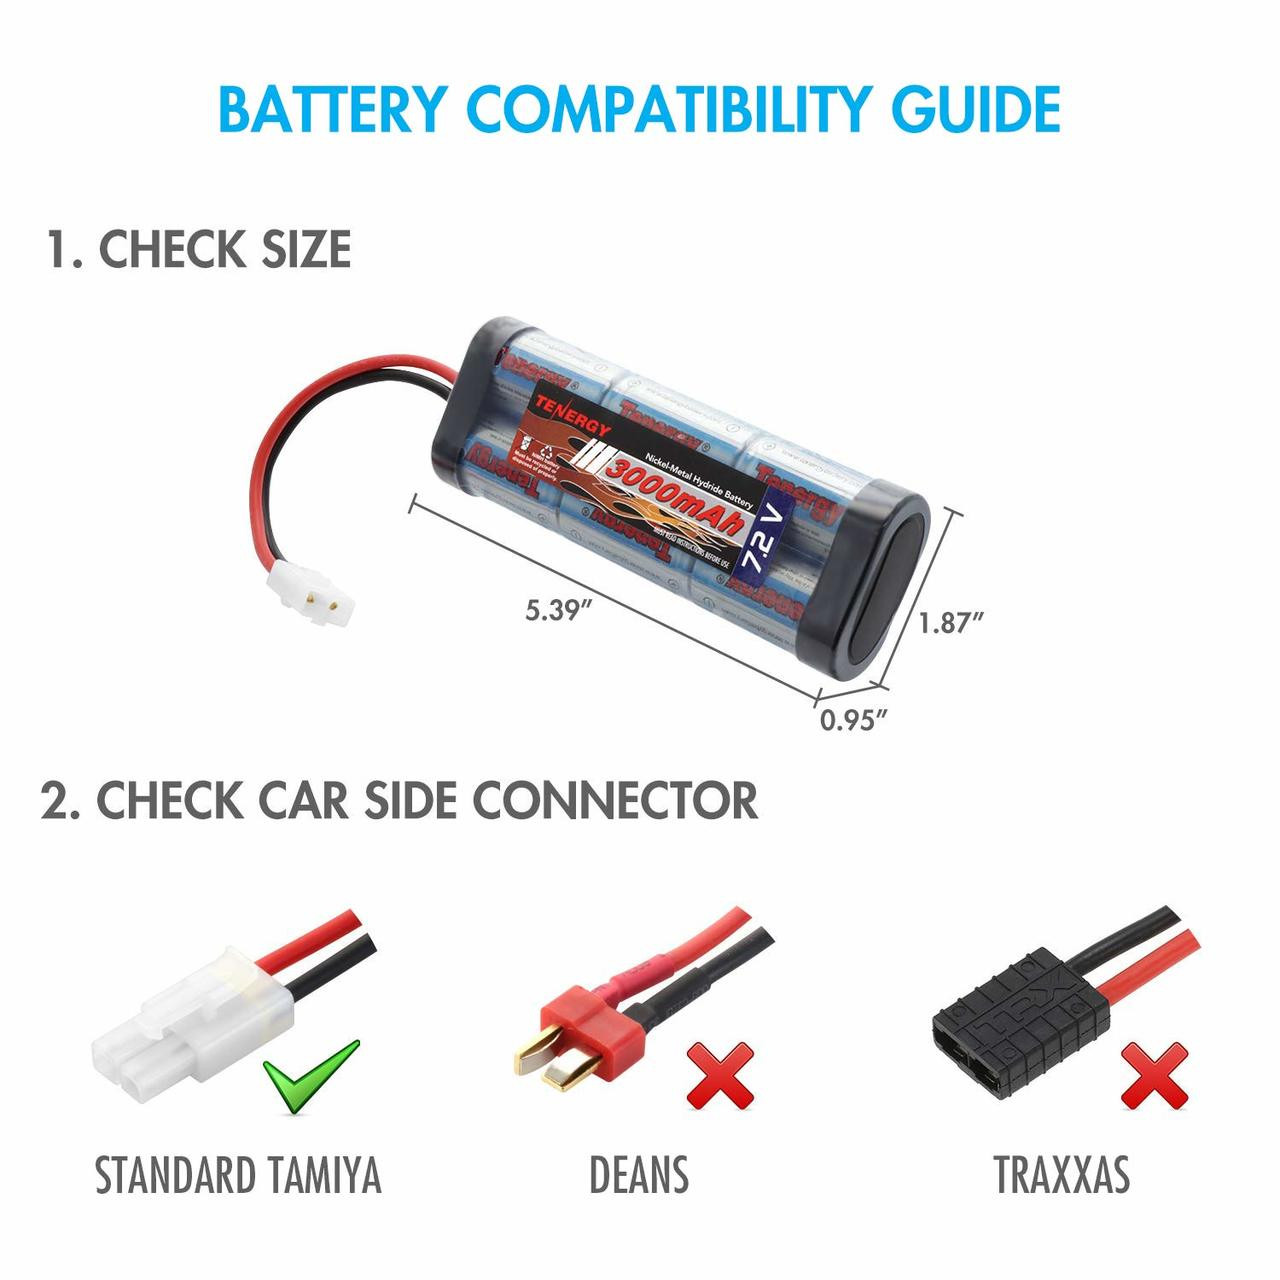 Combo: 2 x Tenergy 7.2V 3000mAh Flat NiMH Battery Packs w/ Tamiya  + Tenergy Smart Universal Charger for NiMH / NiCd Battery: 7.2V - 12V (#01005)